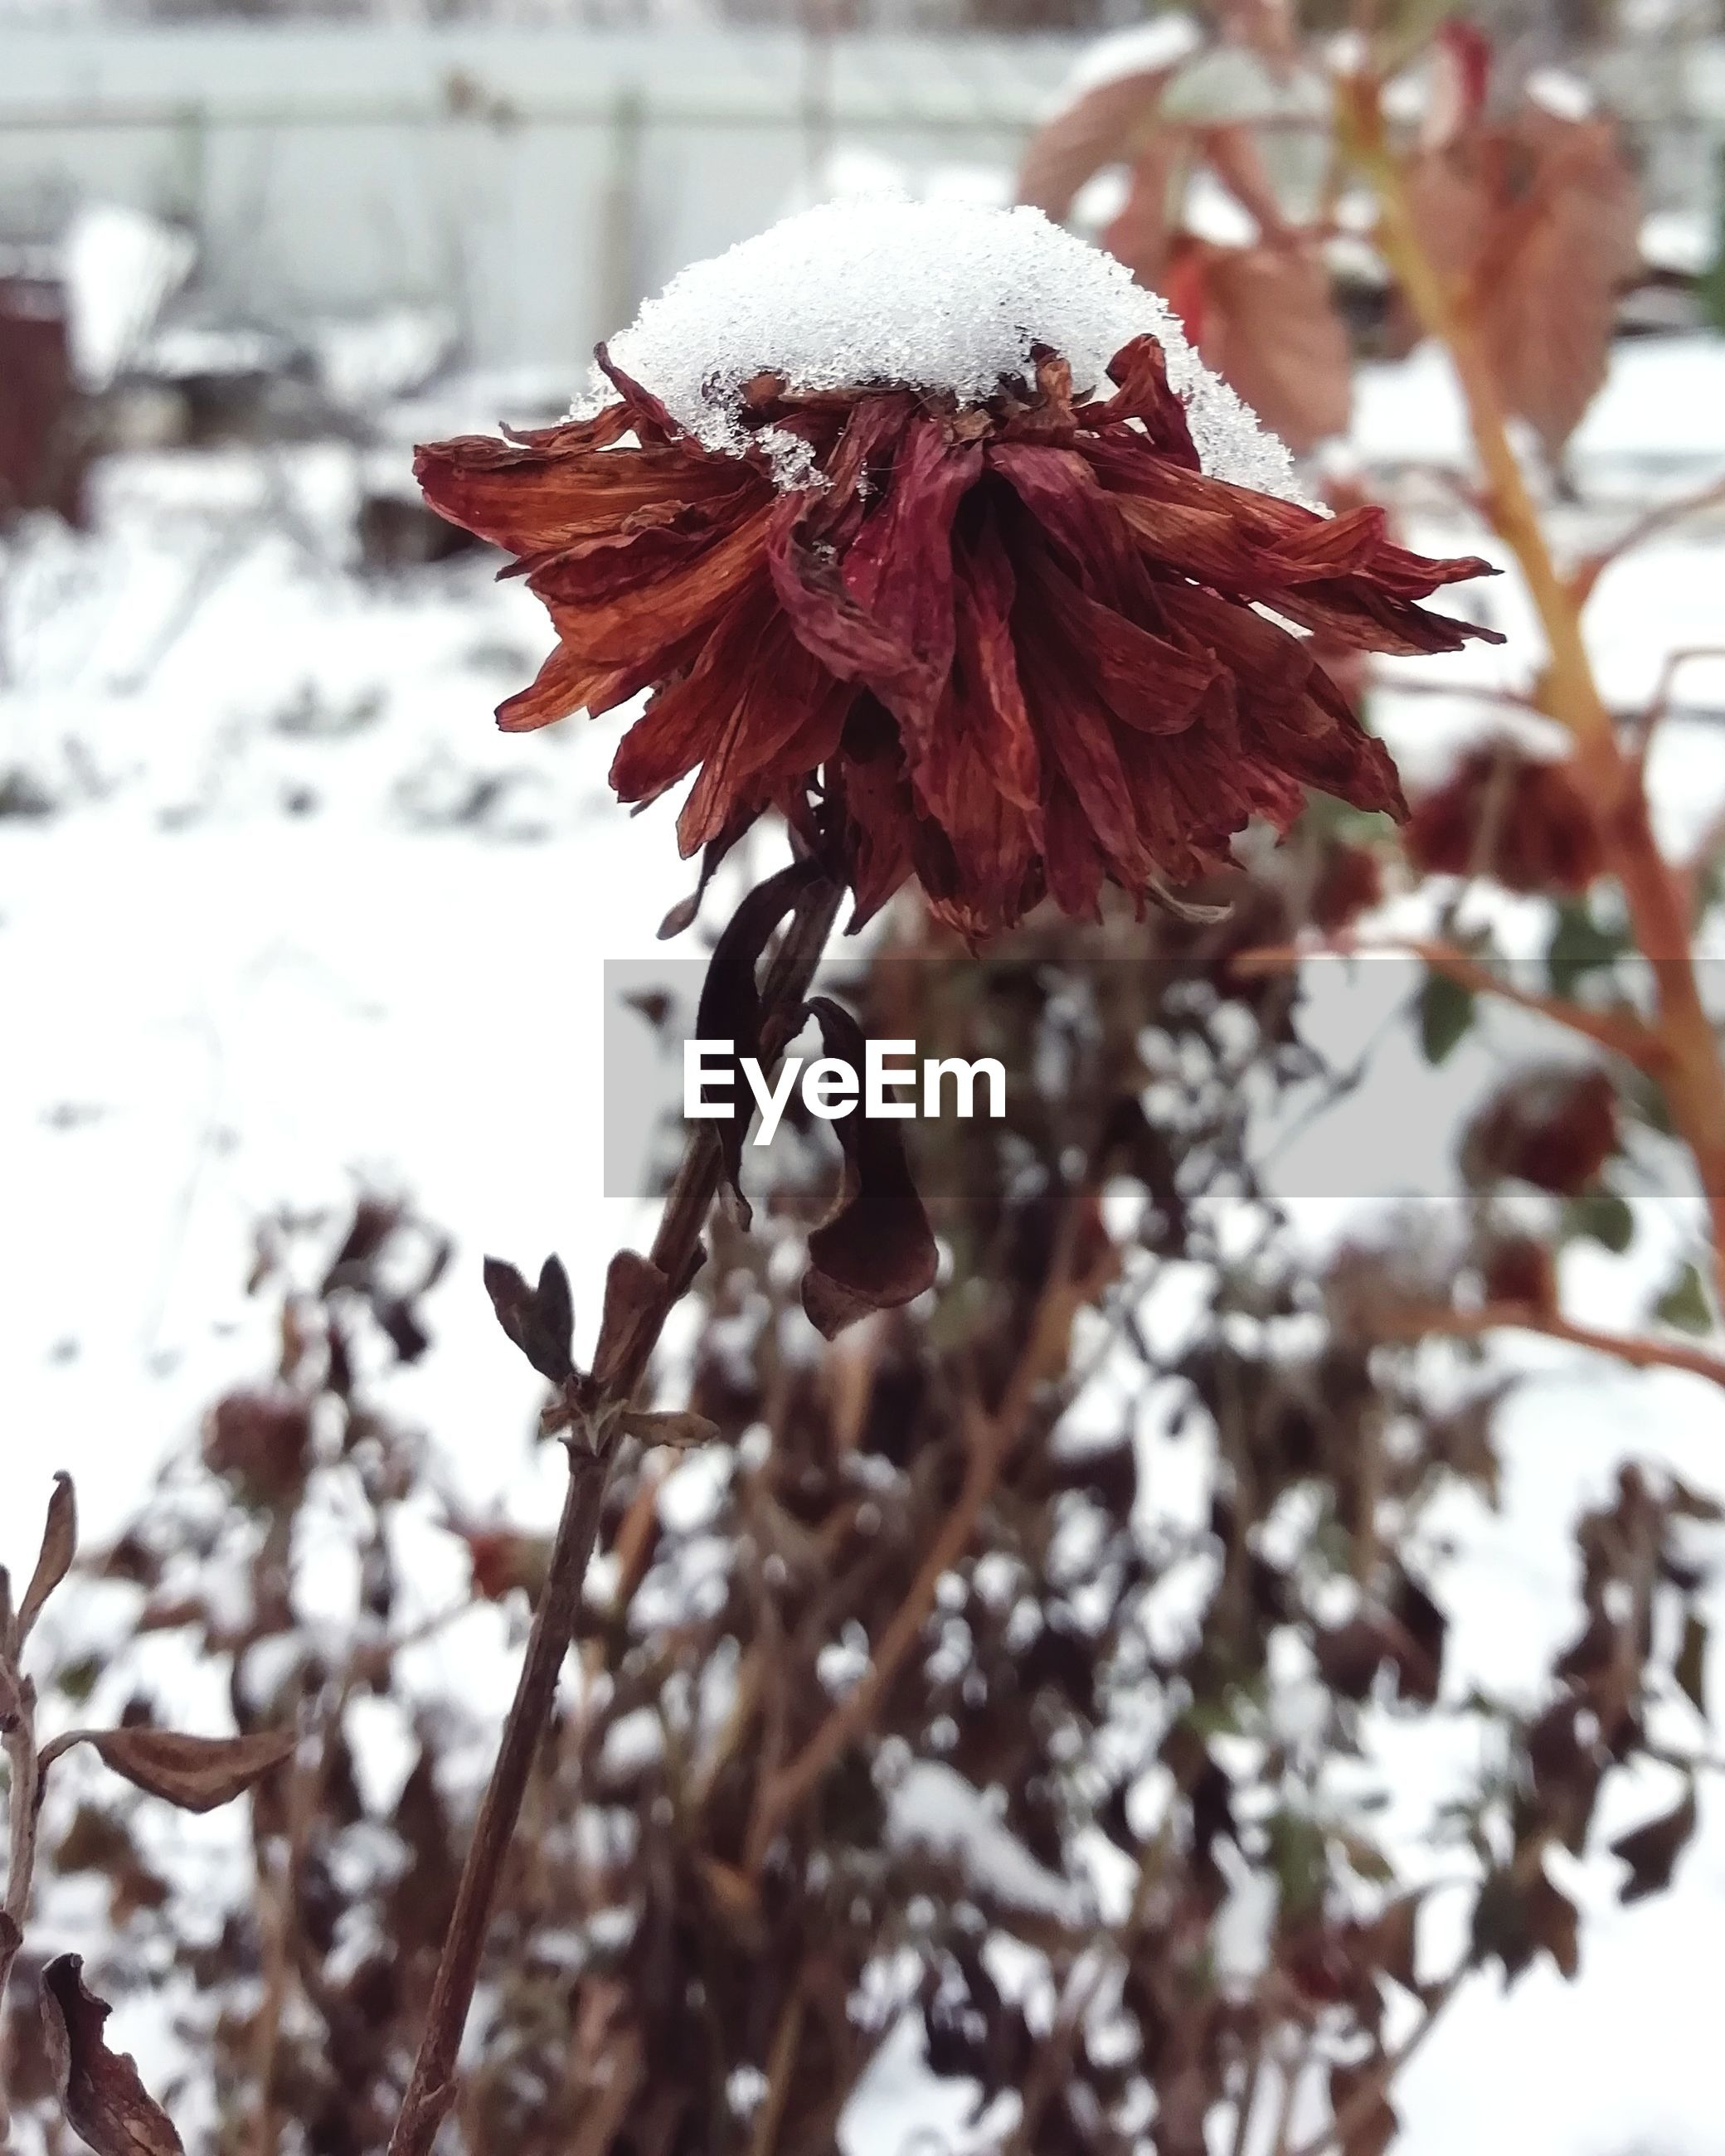 plant, focus on foreground, close-up, beauty in nature, snow, growth, fragility, winter, nature, cold temperature, vulnerability, day, flowering plant, flower, no people, red, tree, freshness, petal, outdoors, flower head, wilted plant